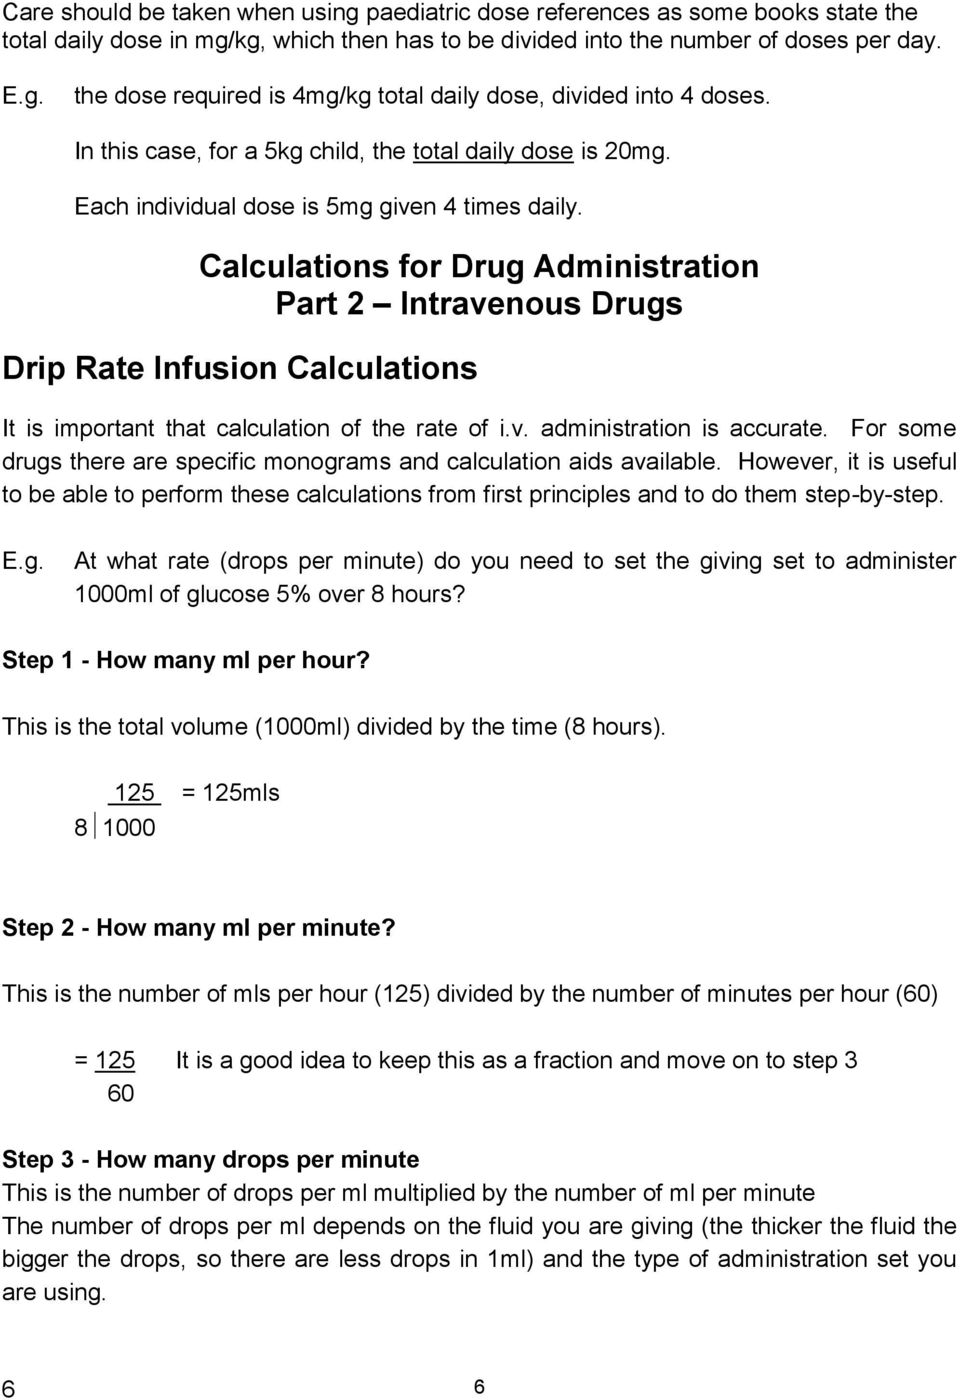 Calculations for Drug Administration Part 2 Intravenous Drugs Drip Rate Infusion Calculations It is important that calculation of the rate of i.v. administration is accurate.